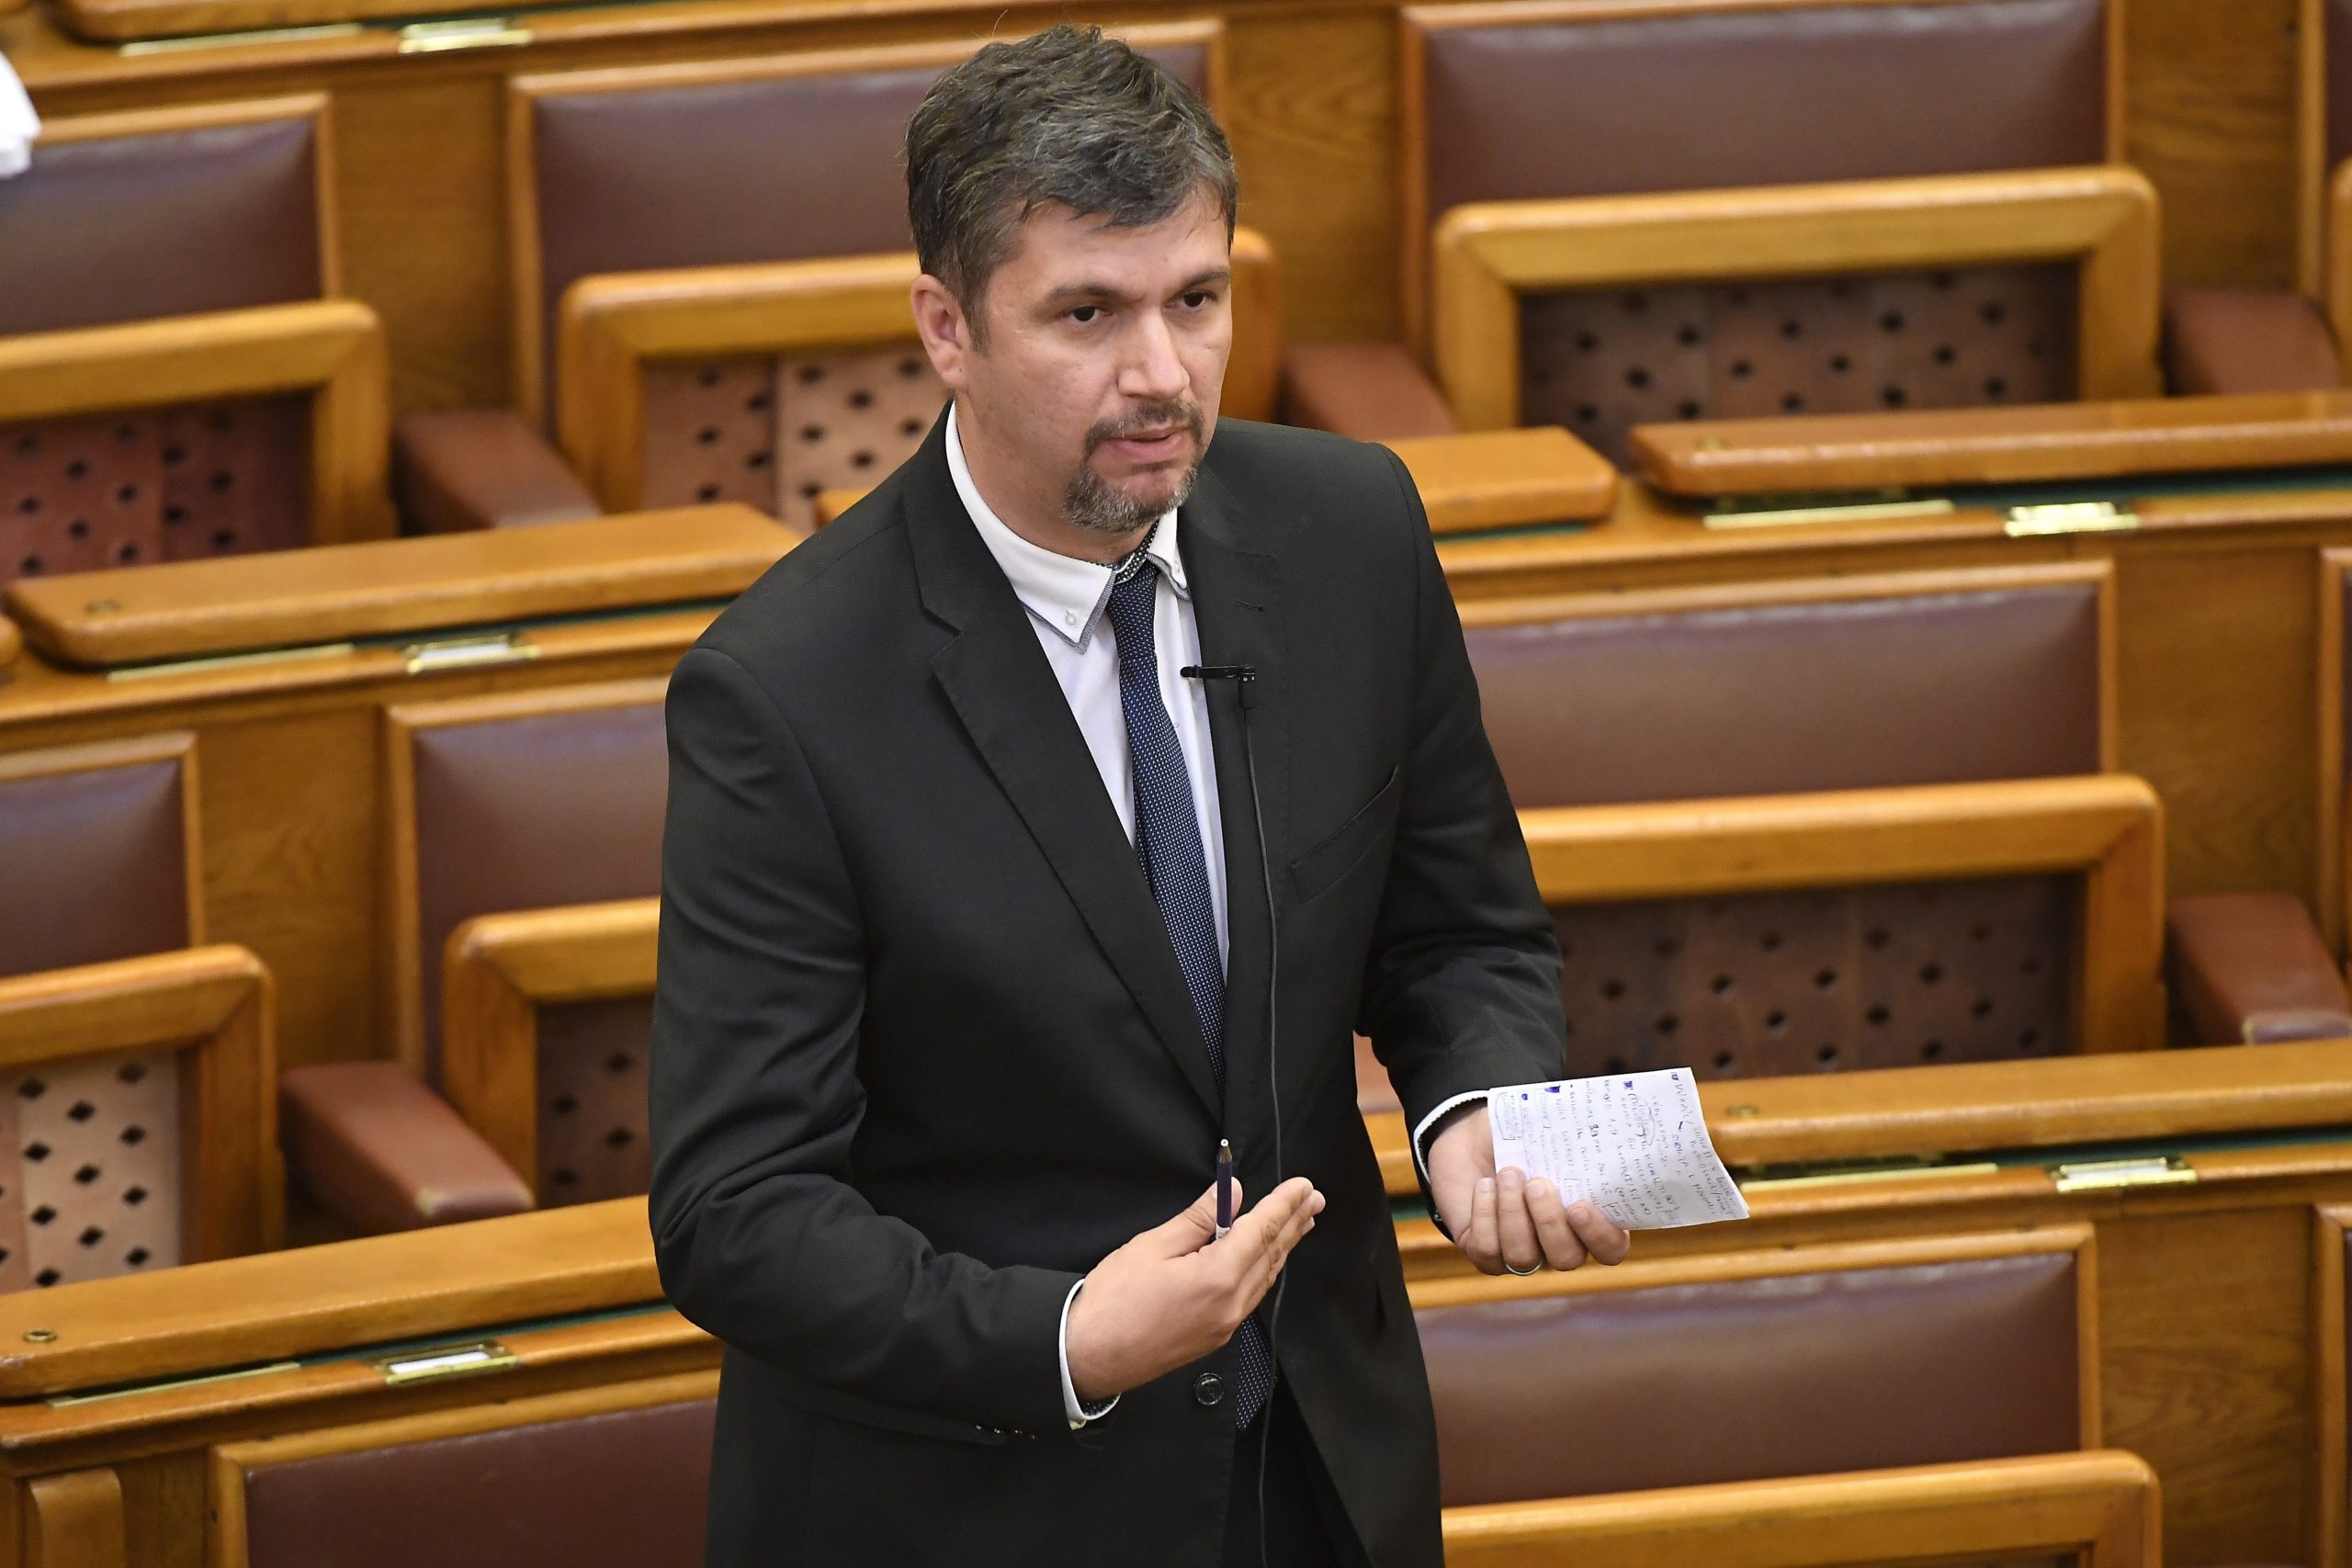 Prosecution Office Drops Case of MP Hadházy's Video of Stacked Coffins in Morgue